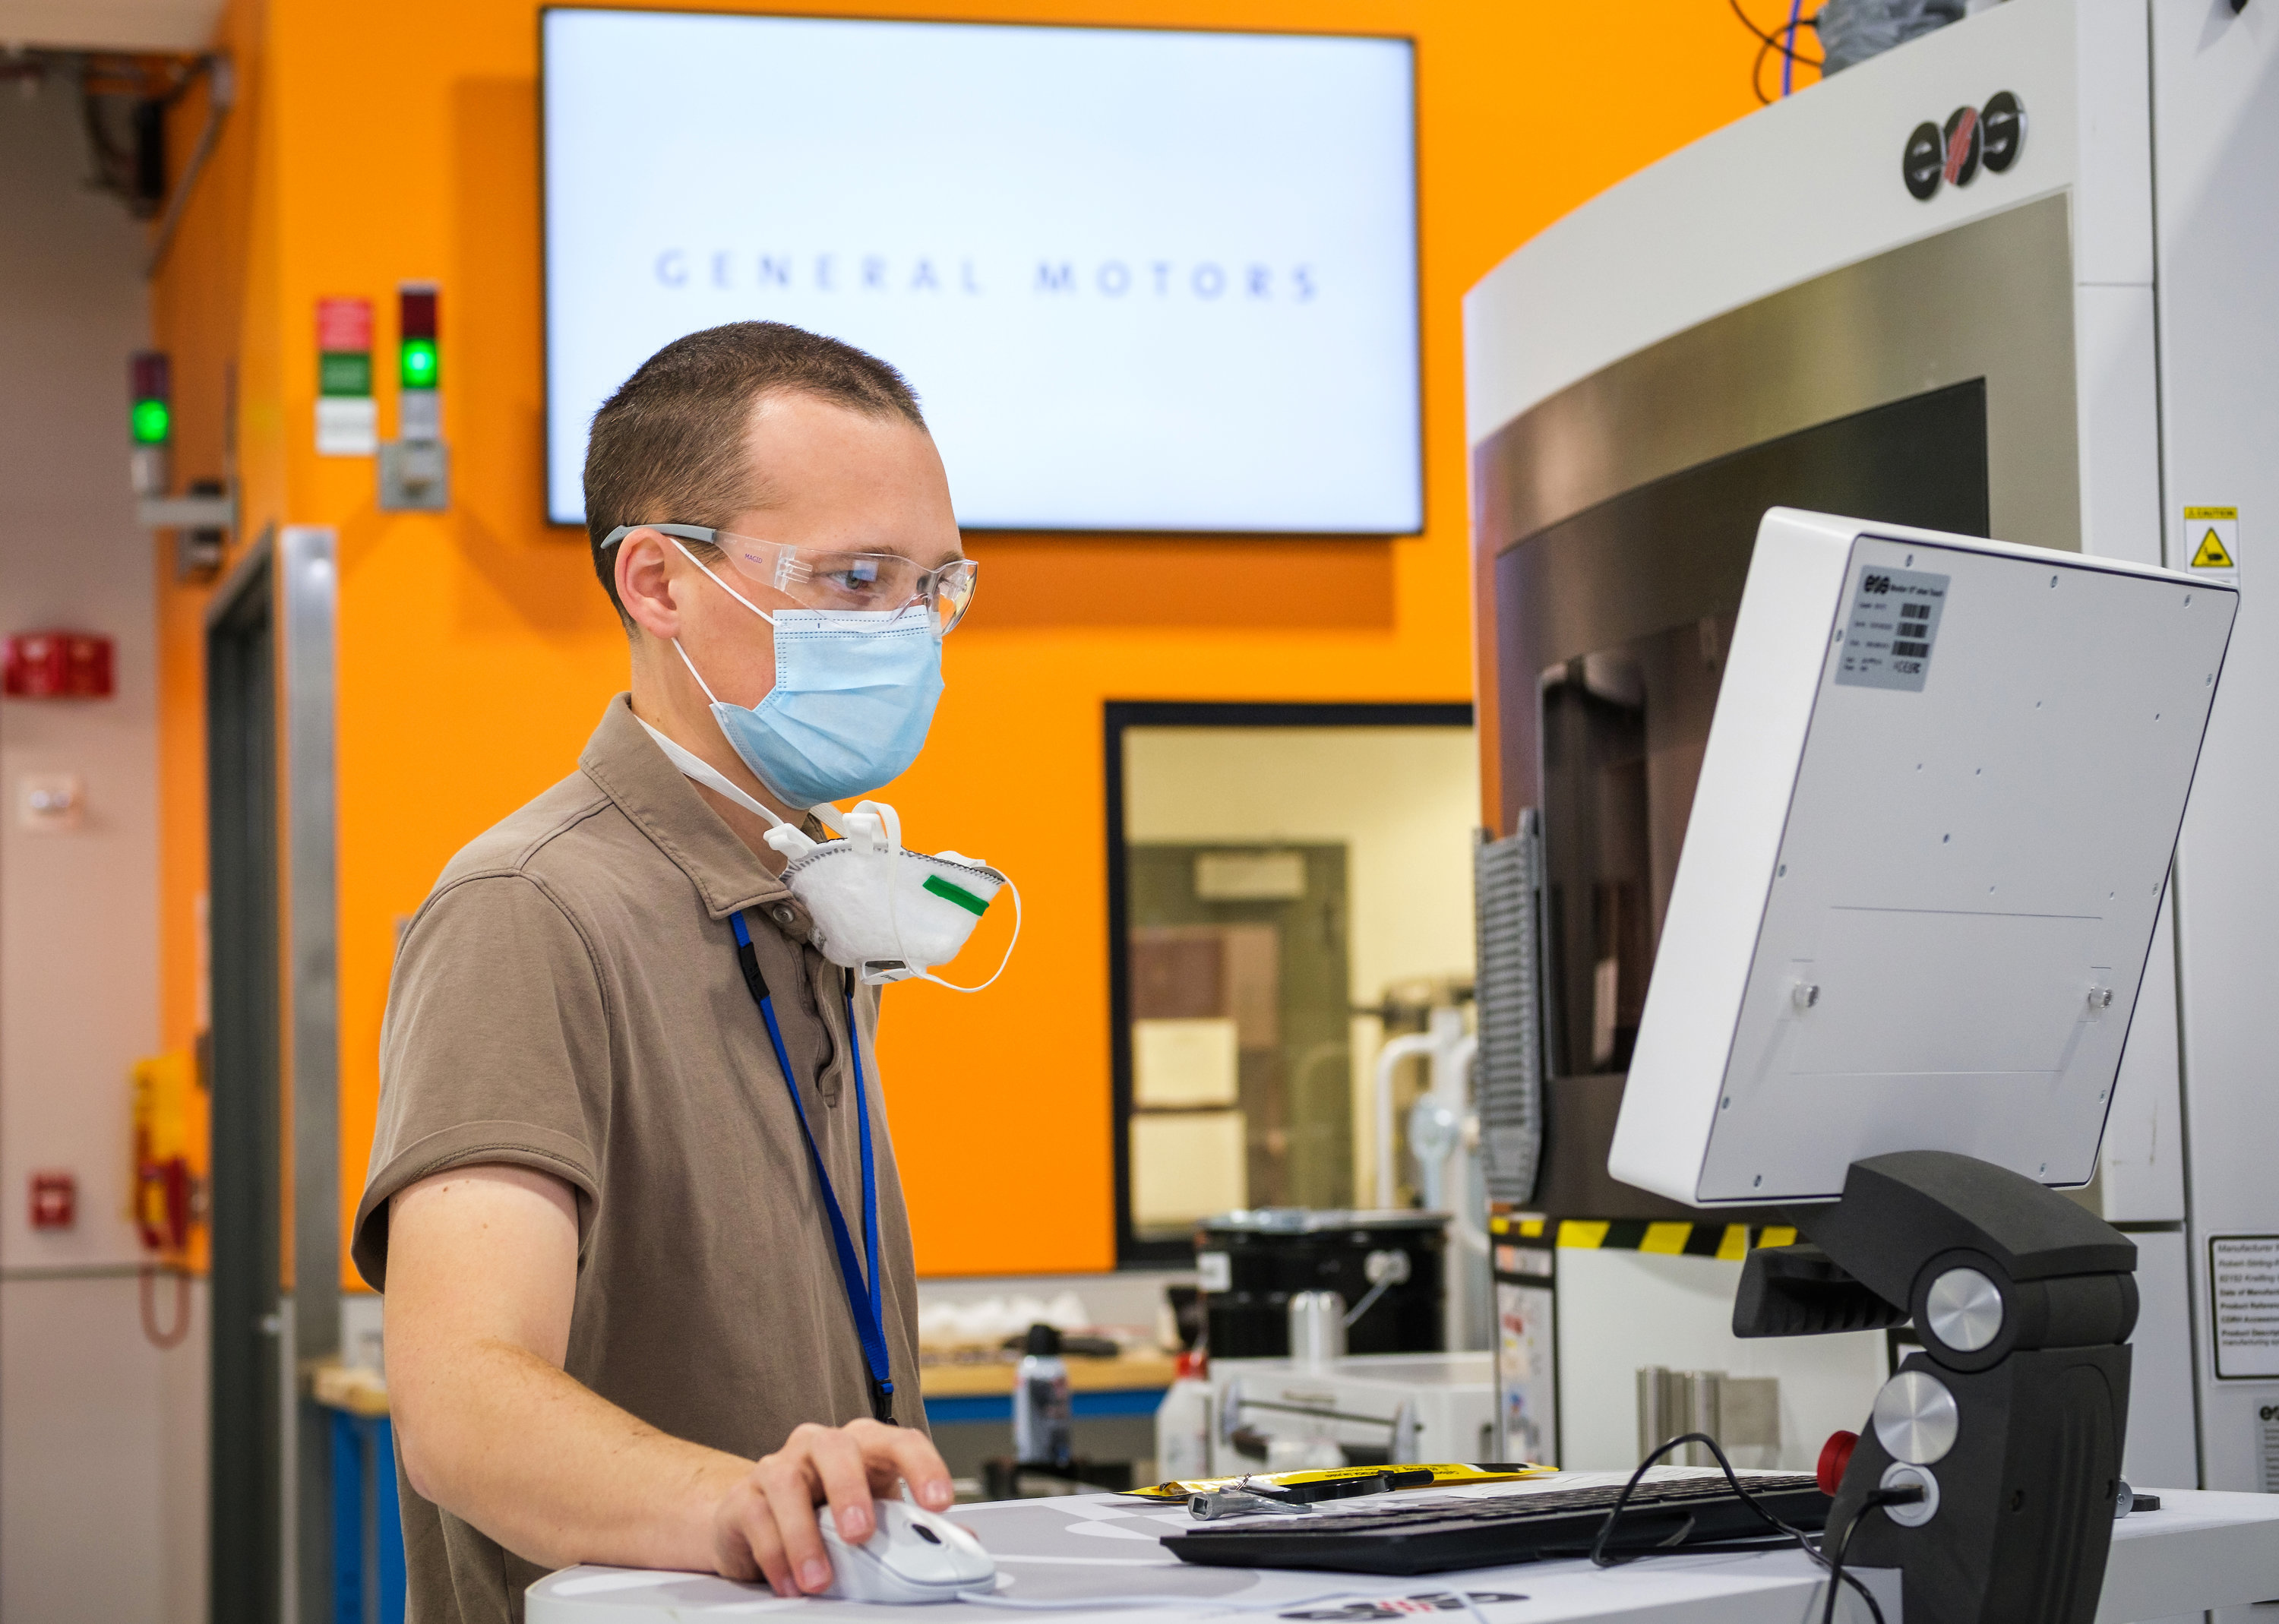 Featured image shows GM's Manufacturing Engineer Benjamin LeBlanc inspecting a 3D printer at the Additive Industrialization Center. Photo via GM.